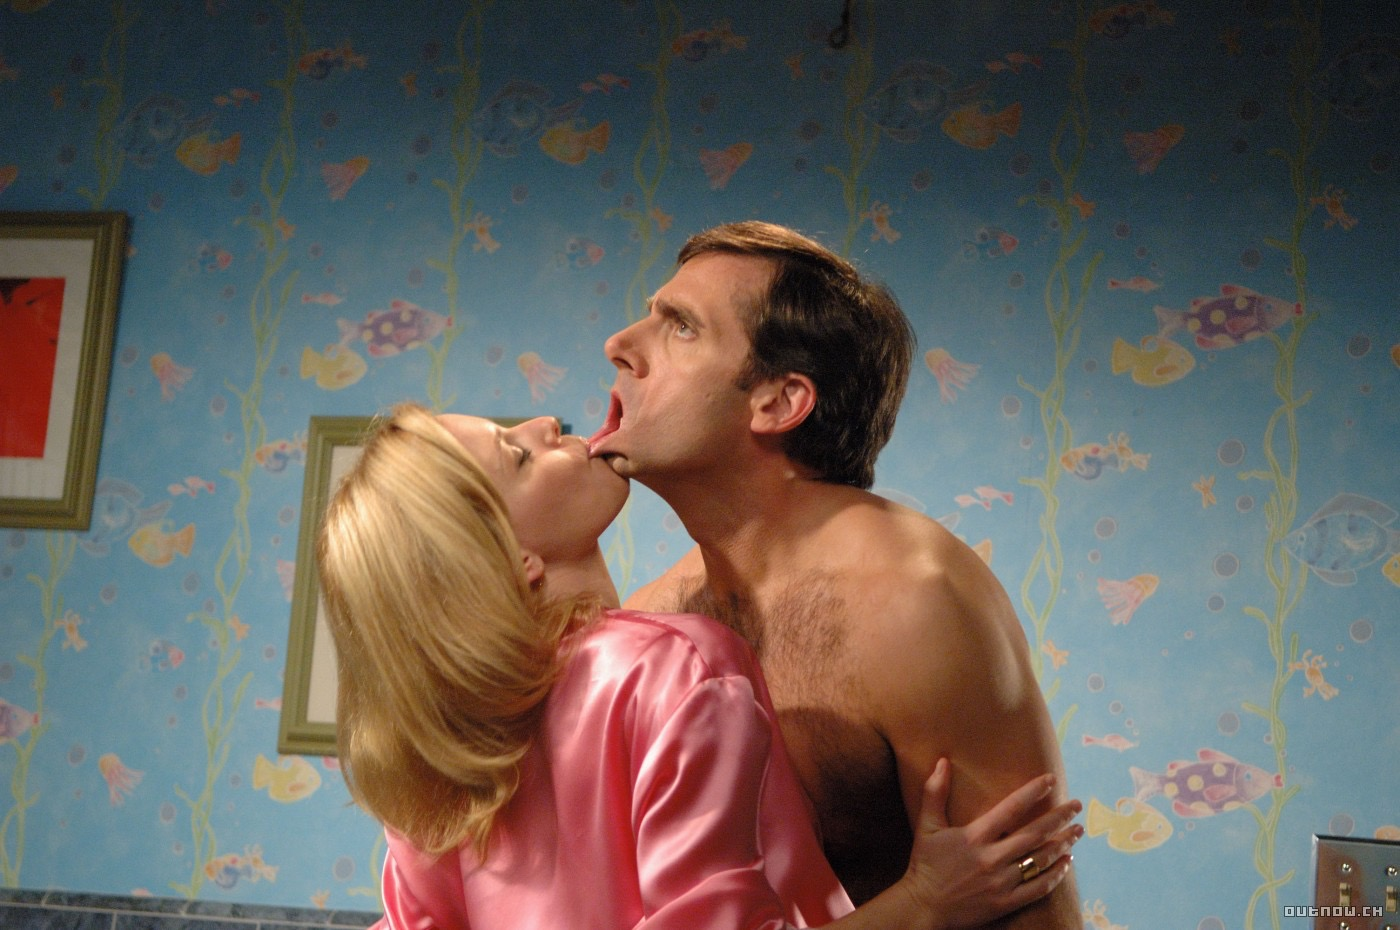 Elizabeth Banks and Steve Carell in The 40 Year Old Virgin (2005)